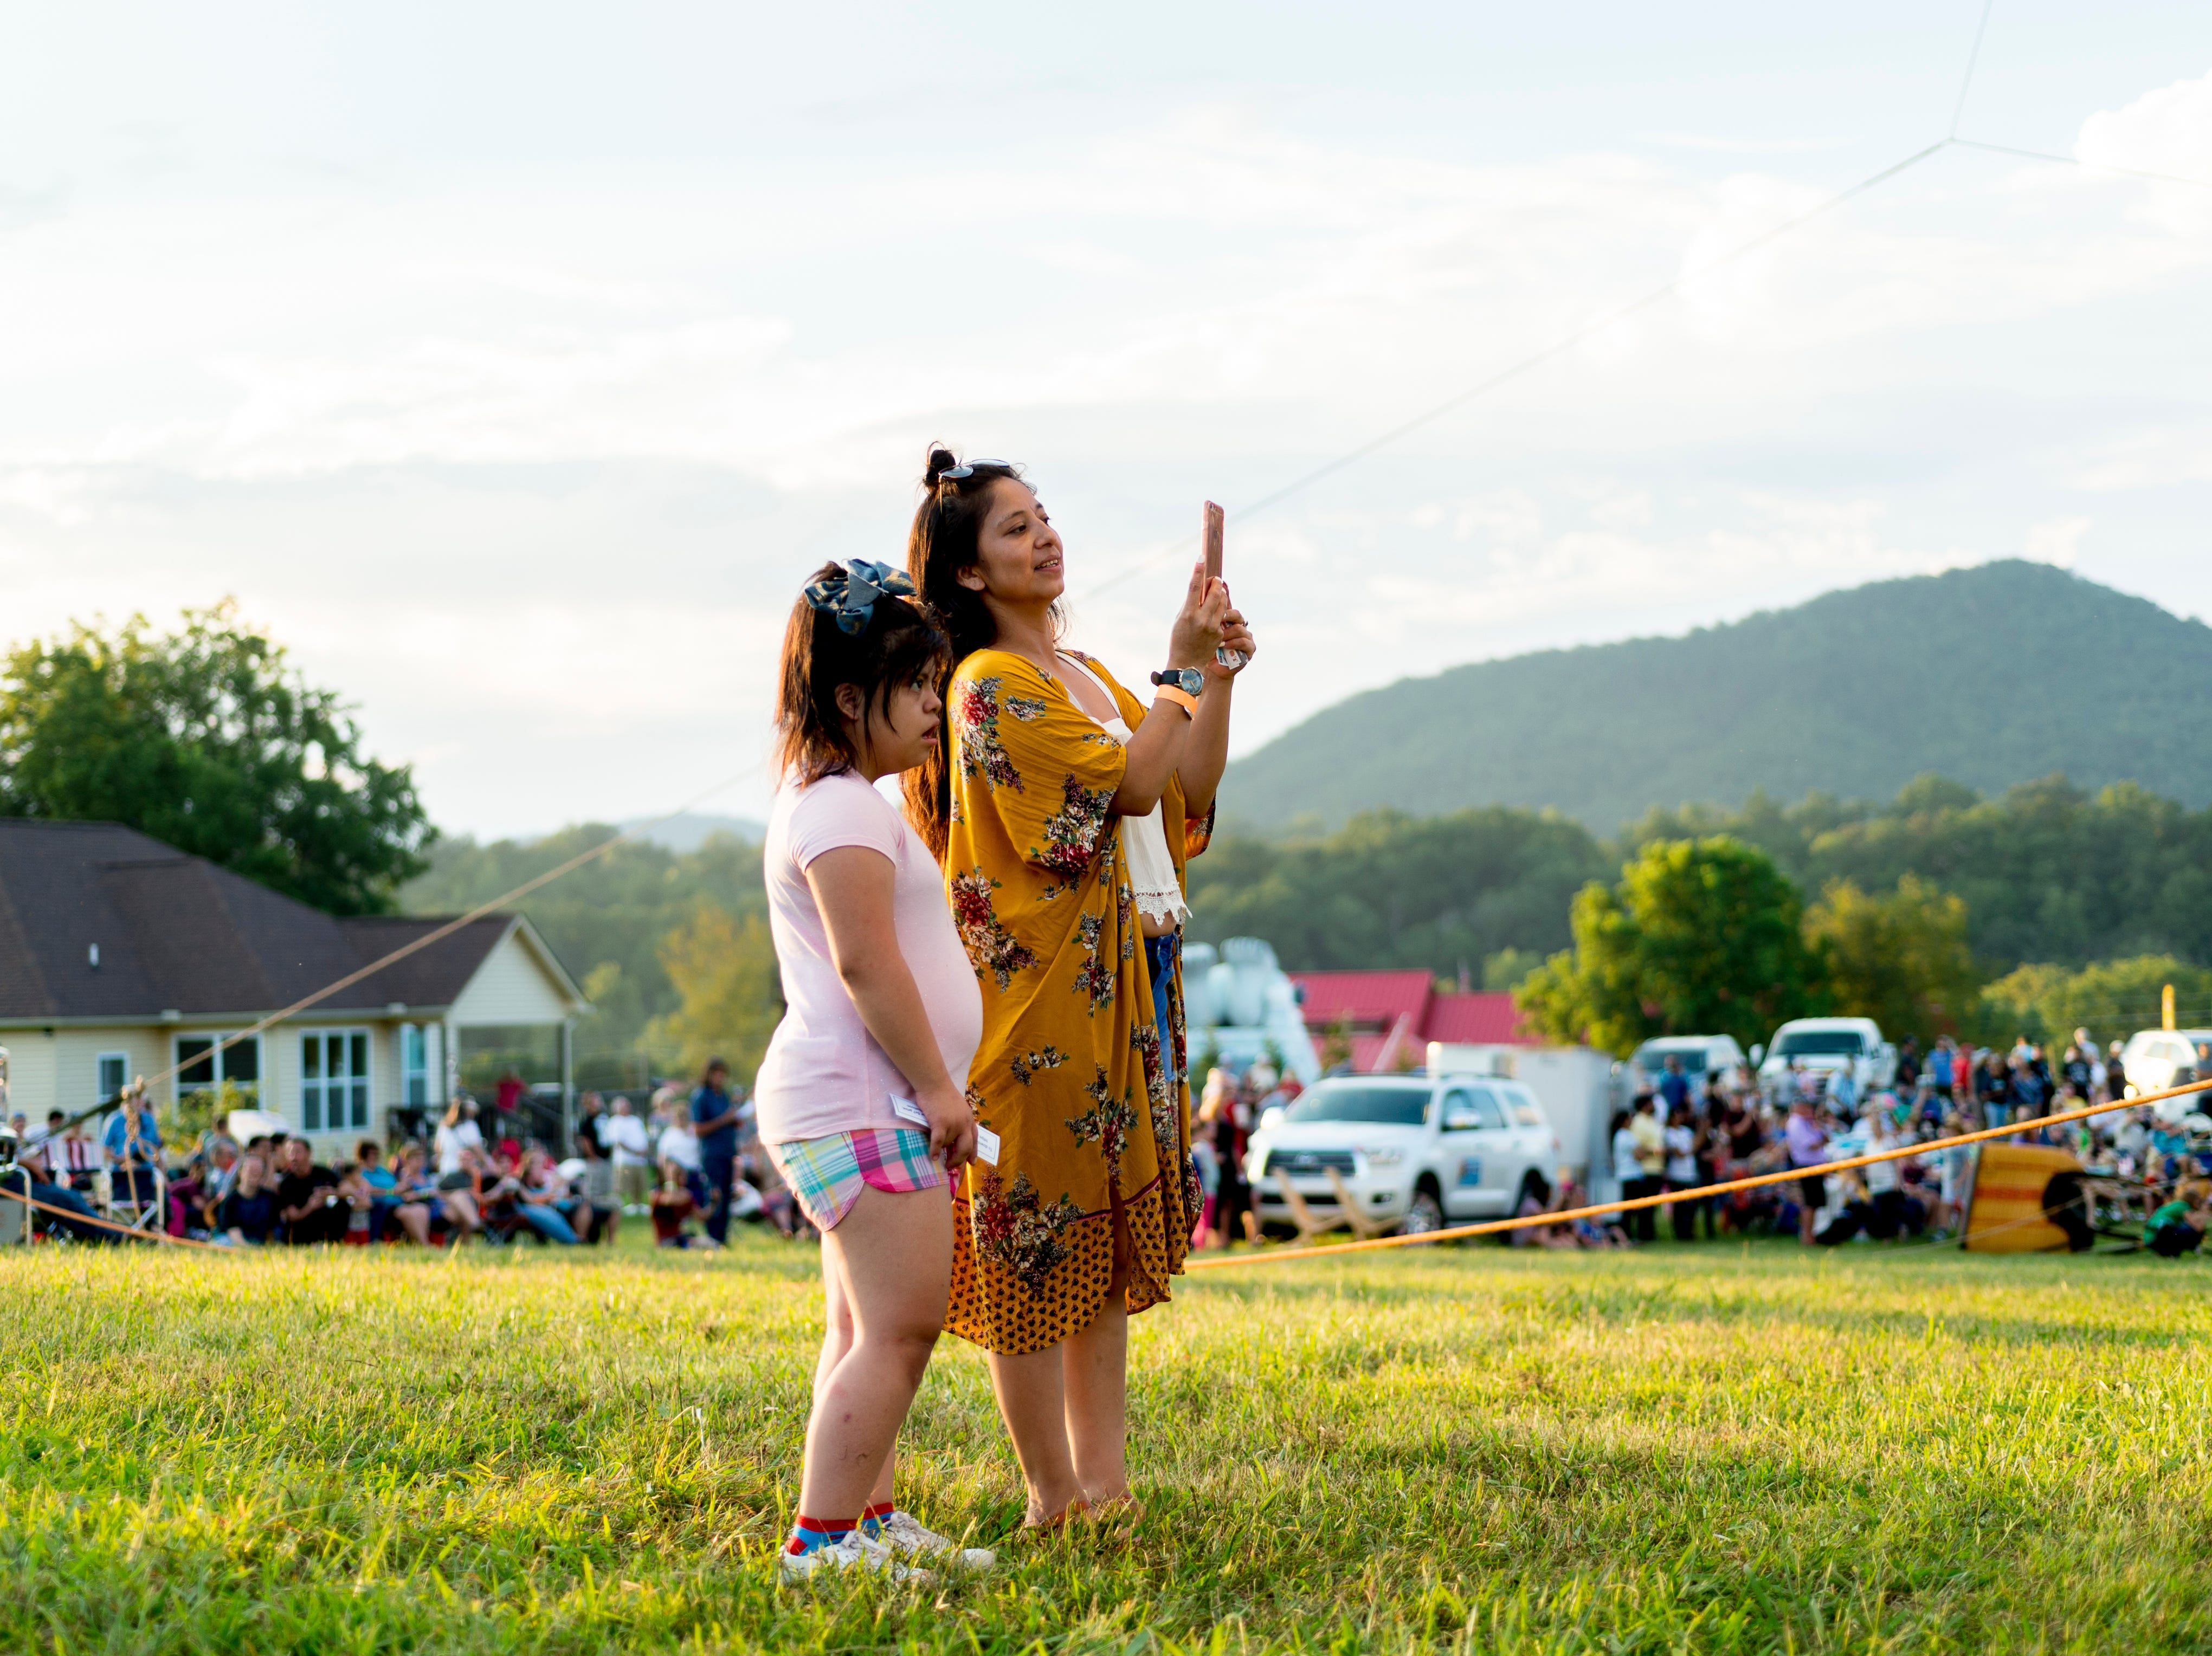 Elena Velasquez, of Chattanooga, and Ashley Velasquez snap a photo of the hot air balloons at the second annual Smoky Mountain Balloon Festival in Townsend, Tennessee on Saturday, August 18, 2018. The festival featured several hot air balloons, food trucks, wine tasting and live entertainment.